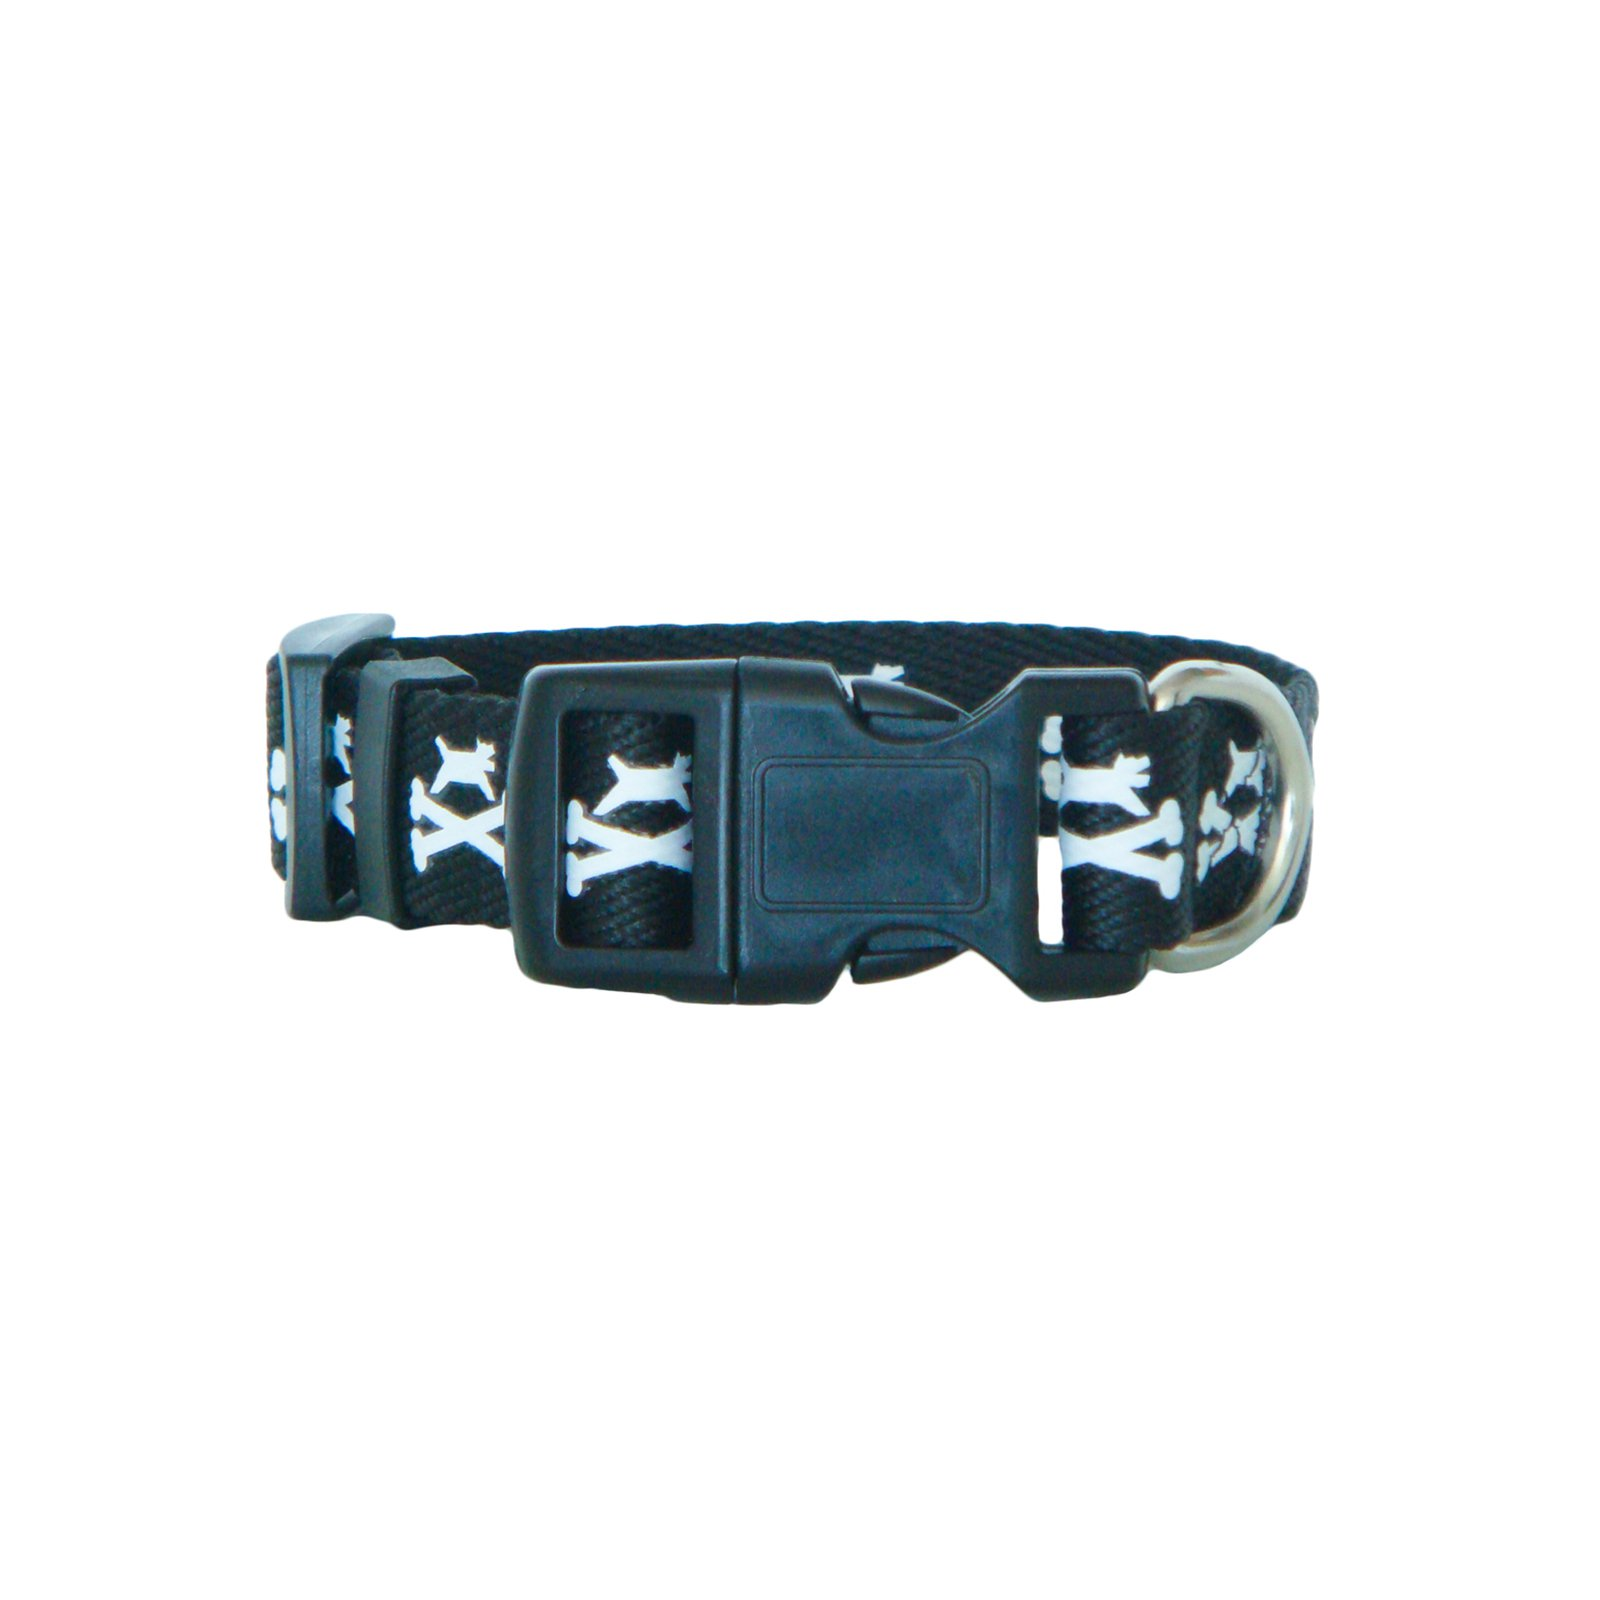 Dog & Crossbones Collar - Medium